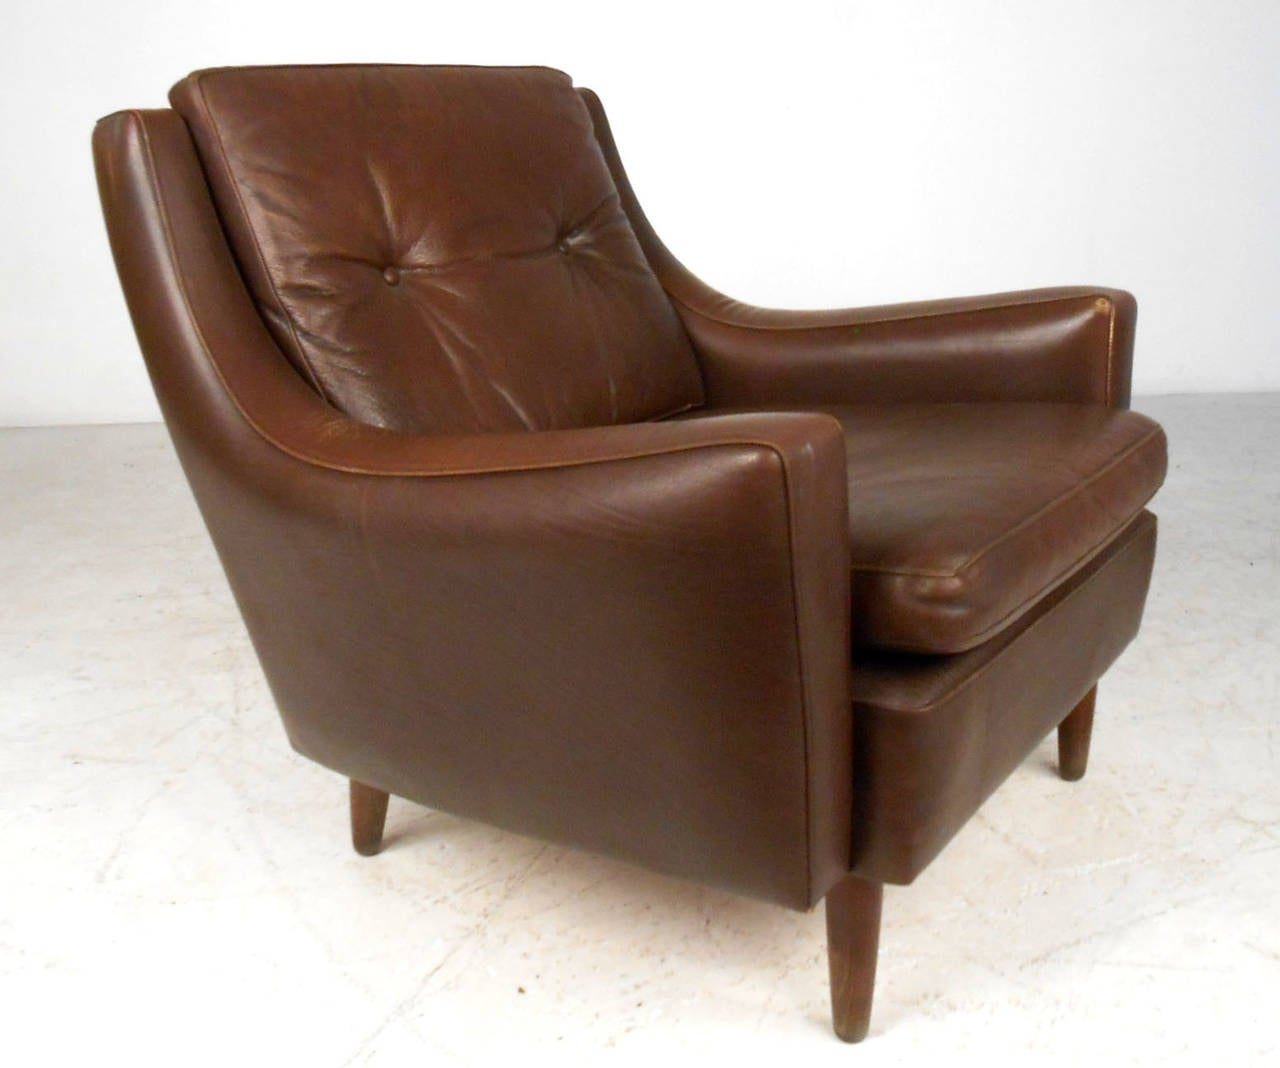 Mid Century Club Chair Mid Century Modern Tufted Brown Leather Club Chair At 1stdibs